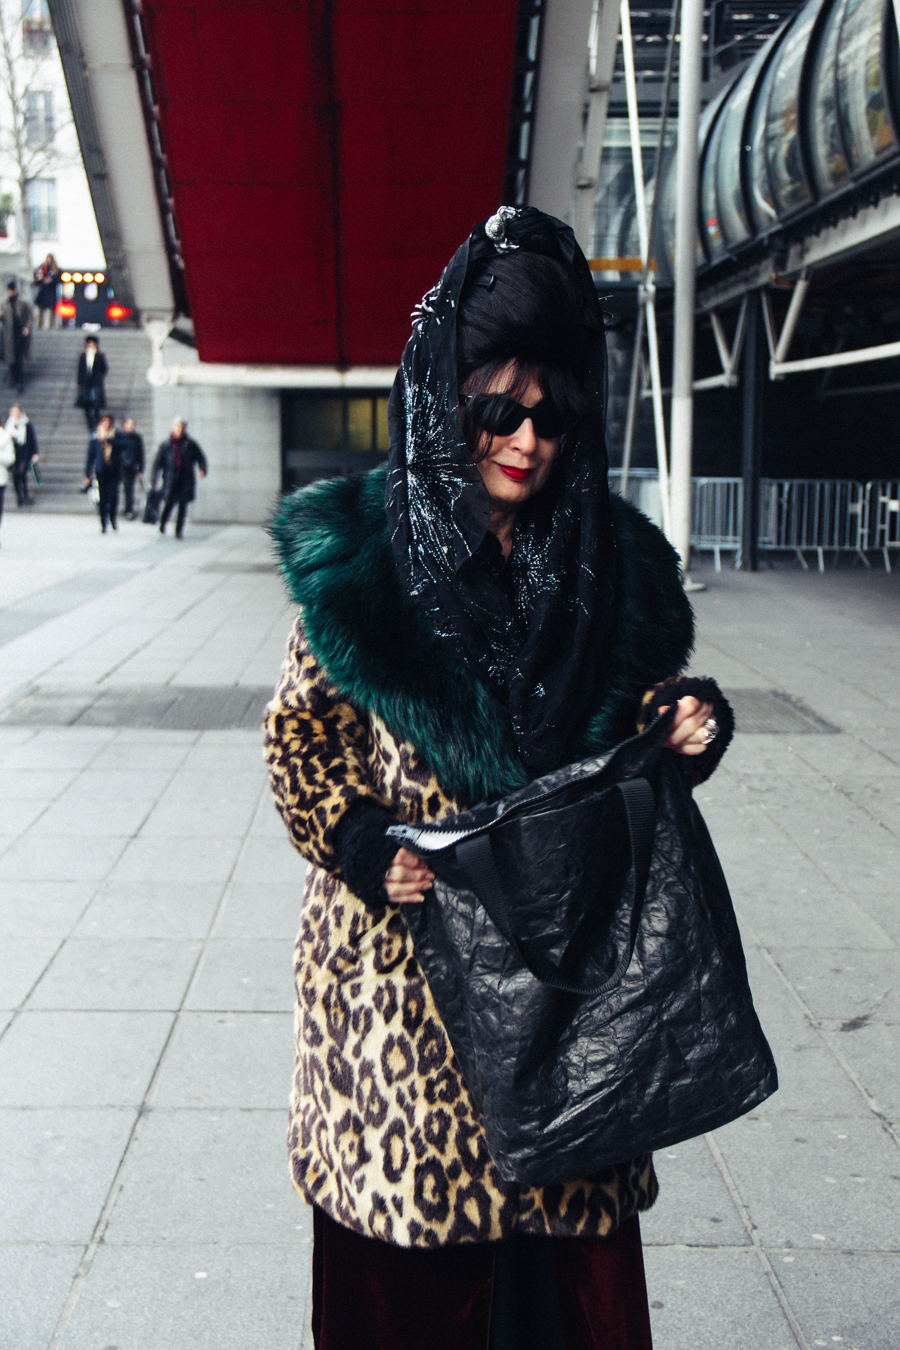 28 street looks from Paris couture week: Diane Pernet